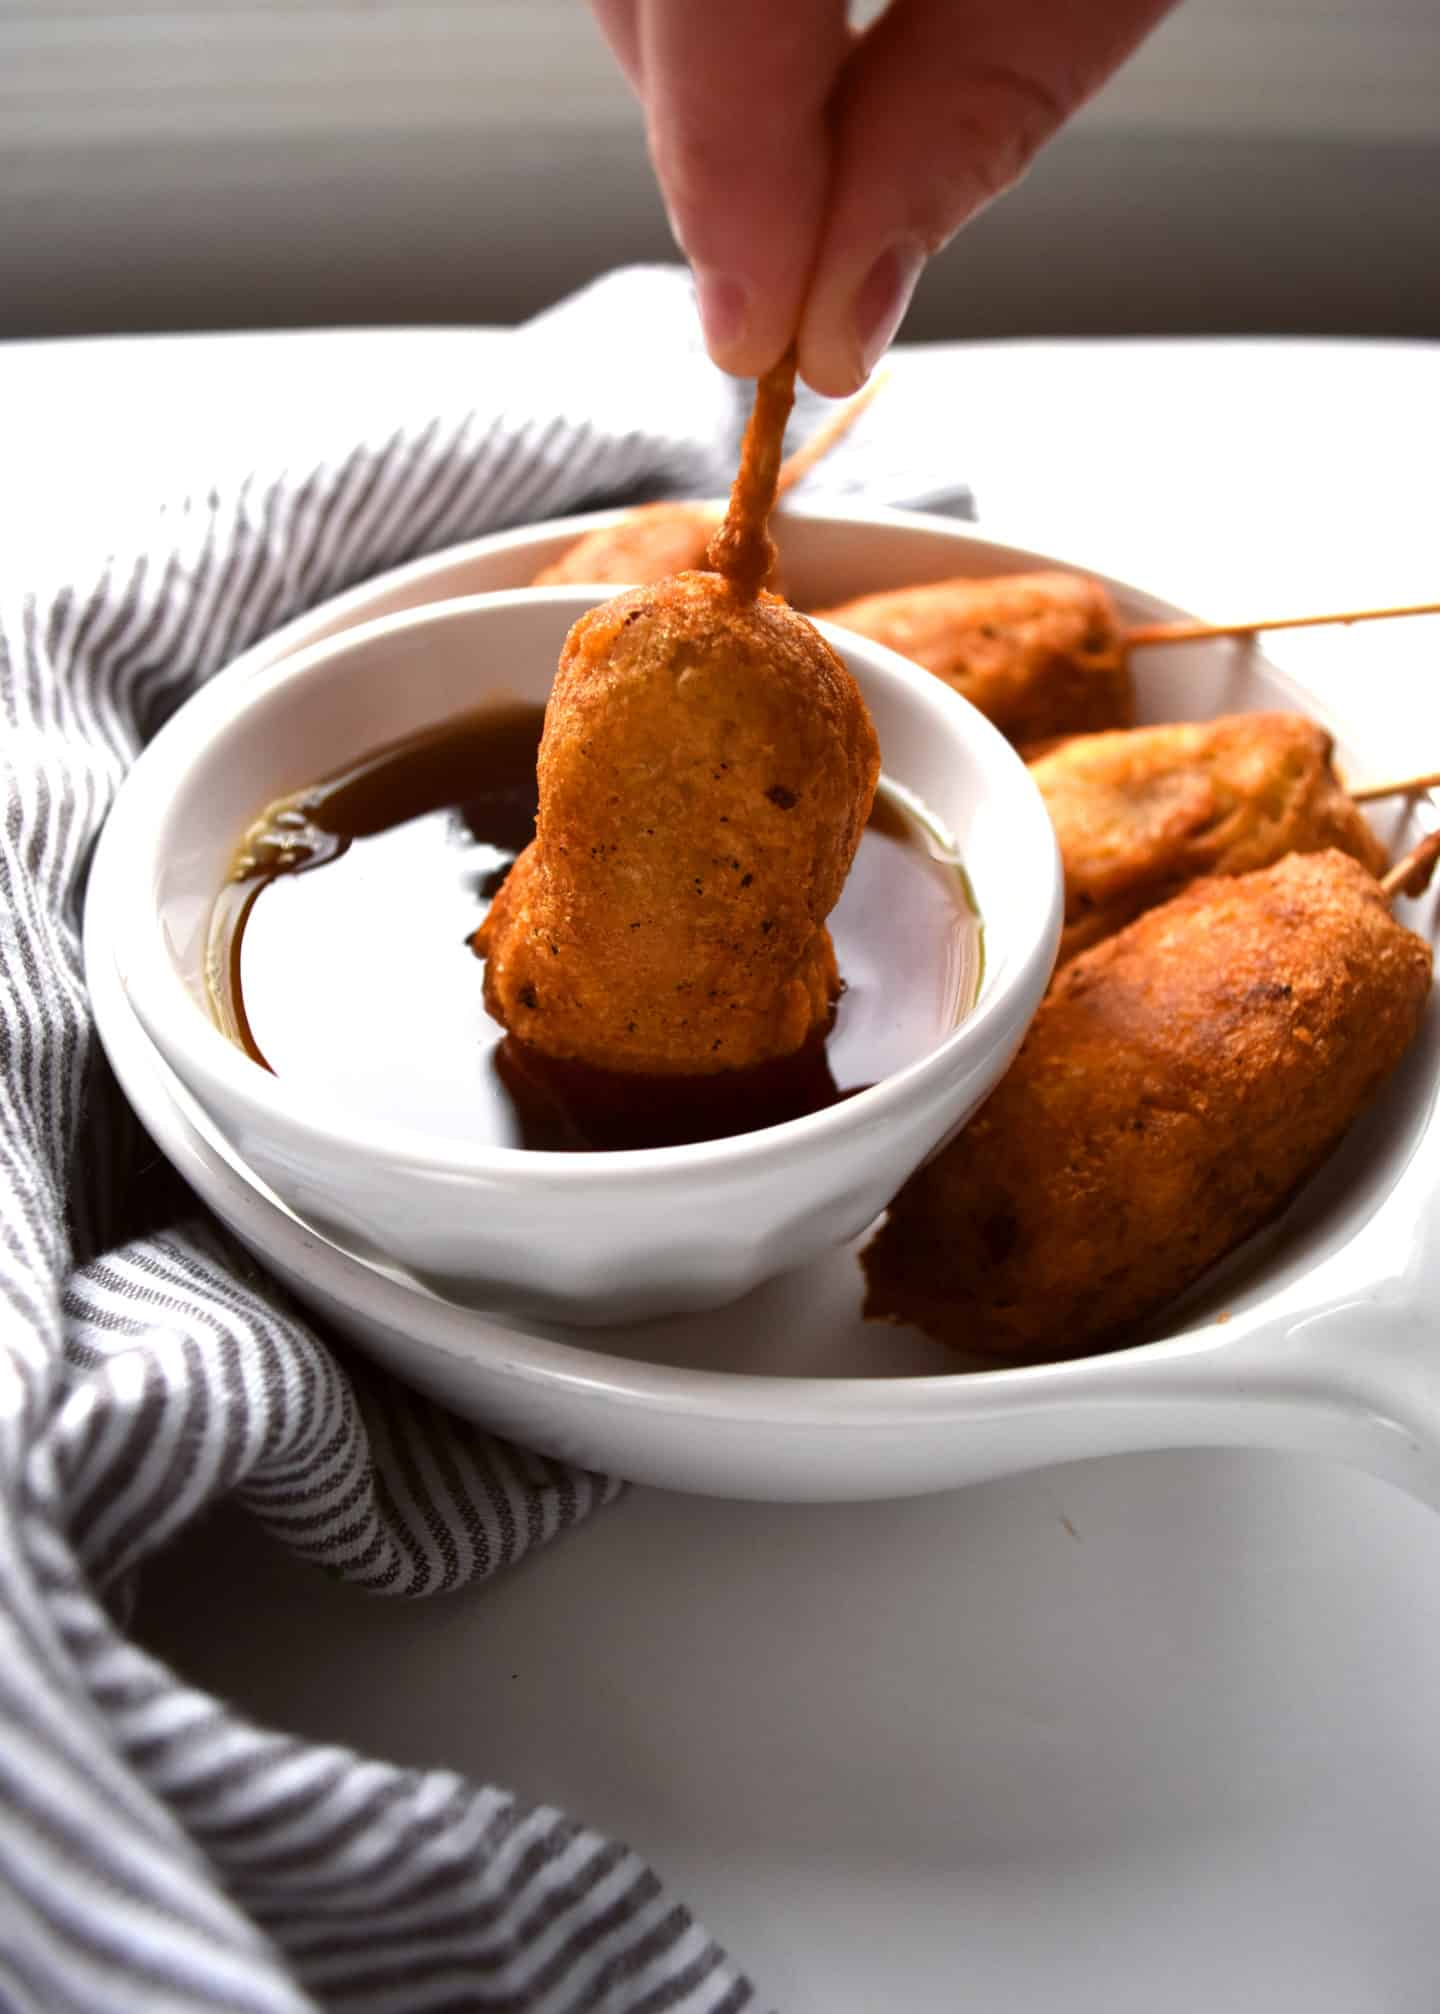 breakfast corn dogs being dipped into maple syrup